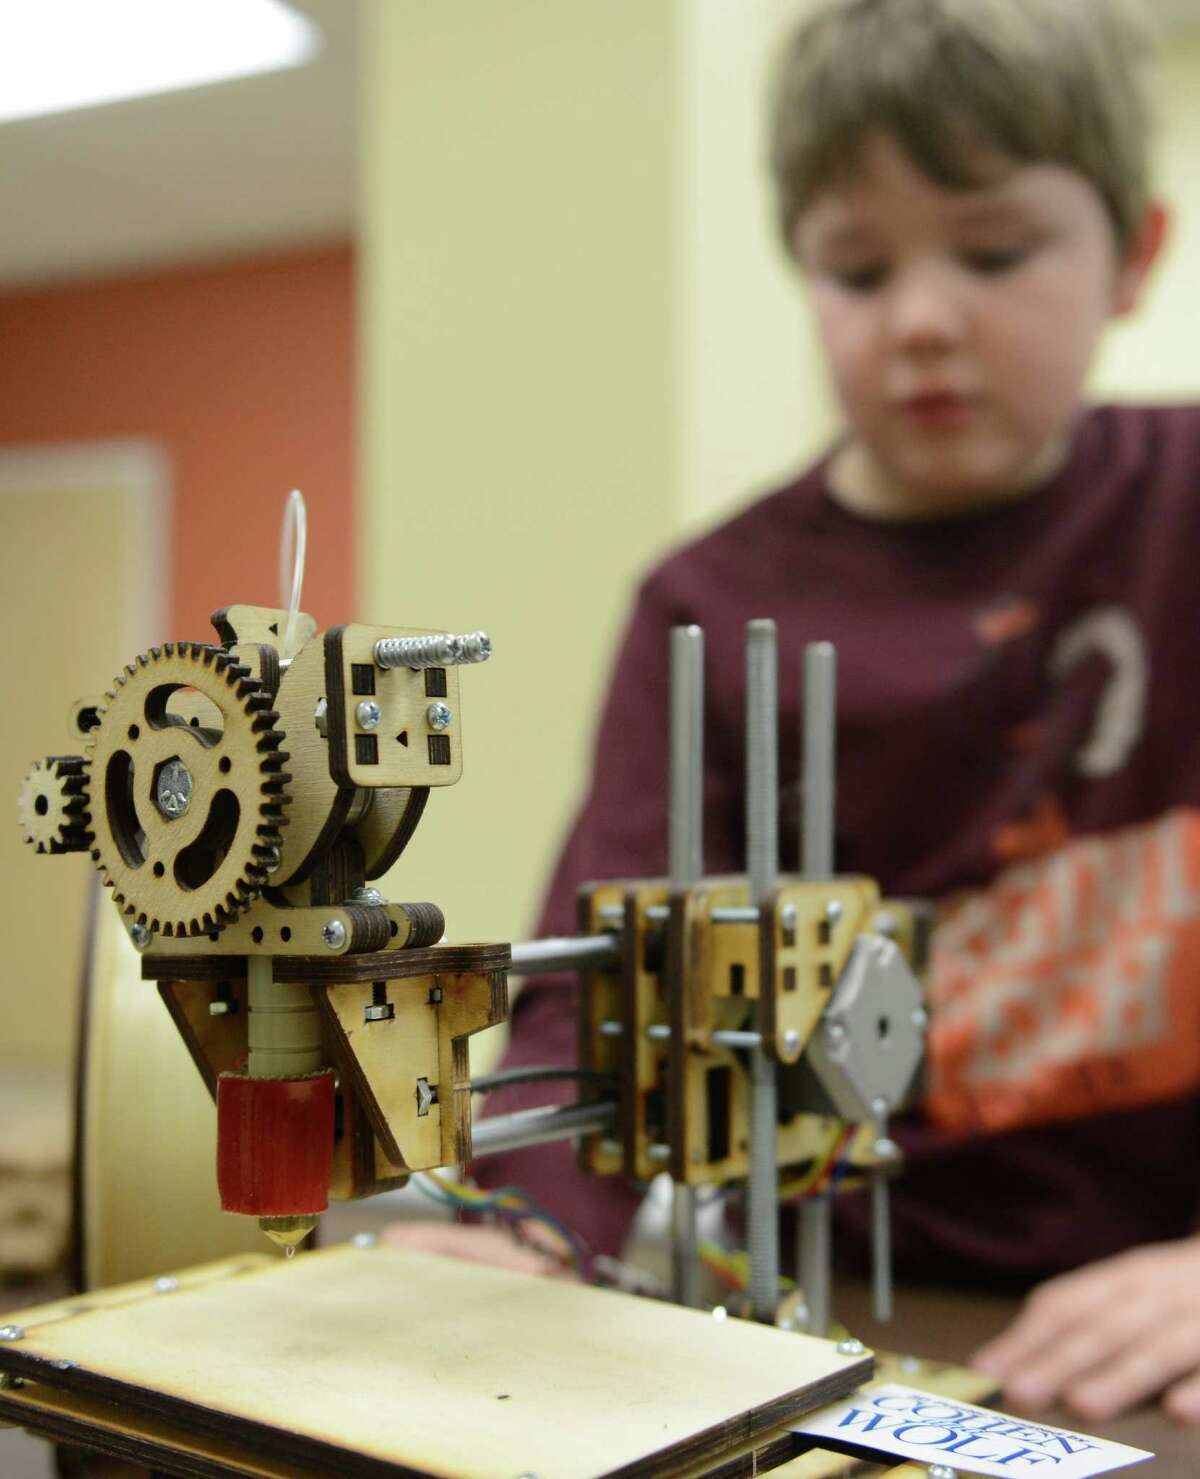 Leo Luning, a student at Hudson Country Montessori School, shows a model of the 3-D printer he assembled at the Danbury Innovation Center.